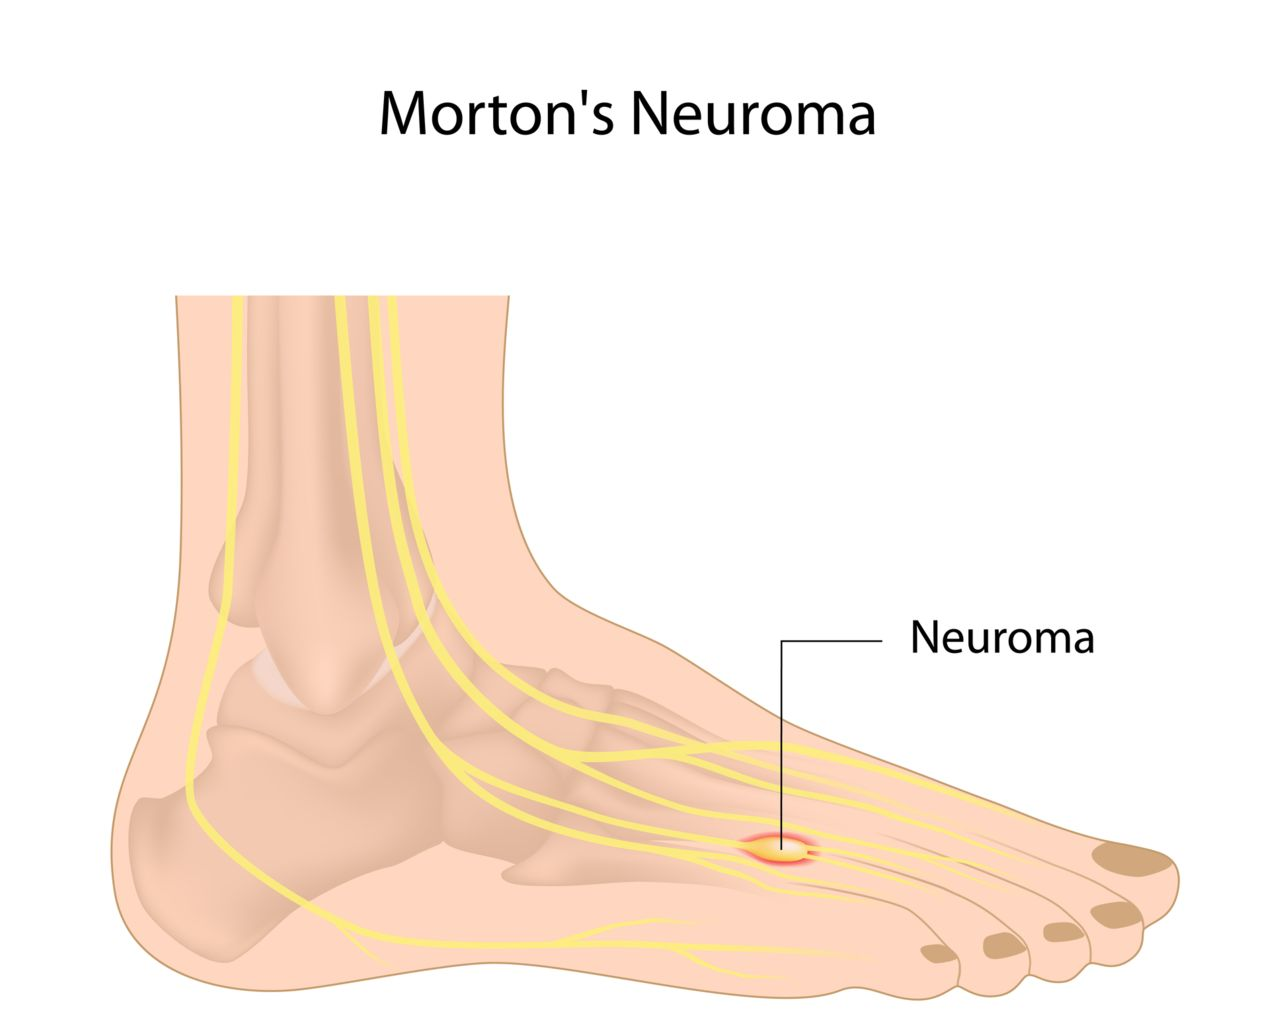 What is a Morton's Neuroma?